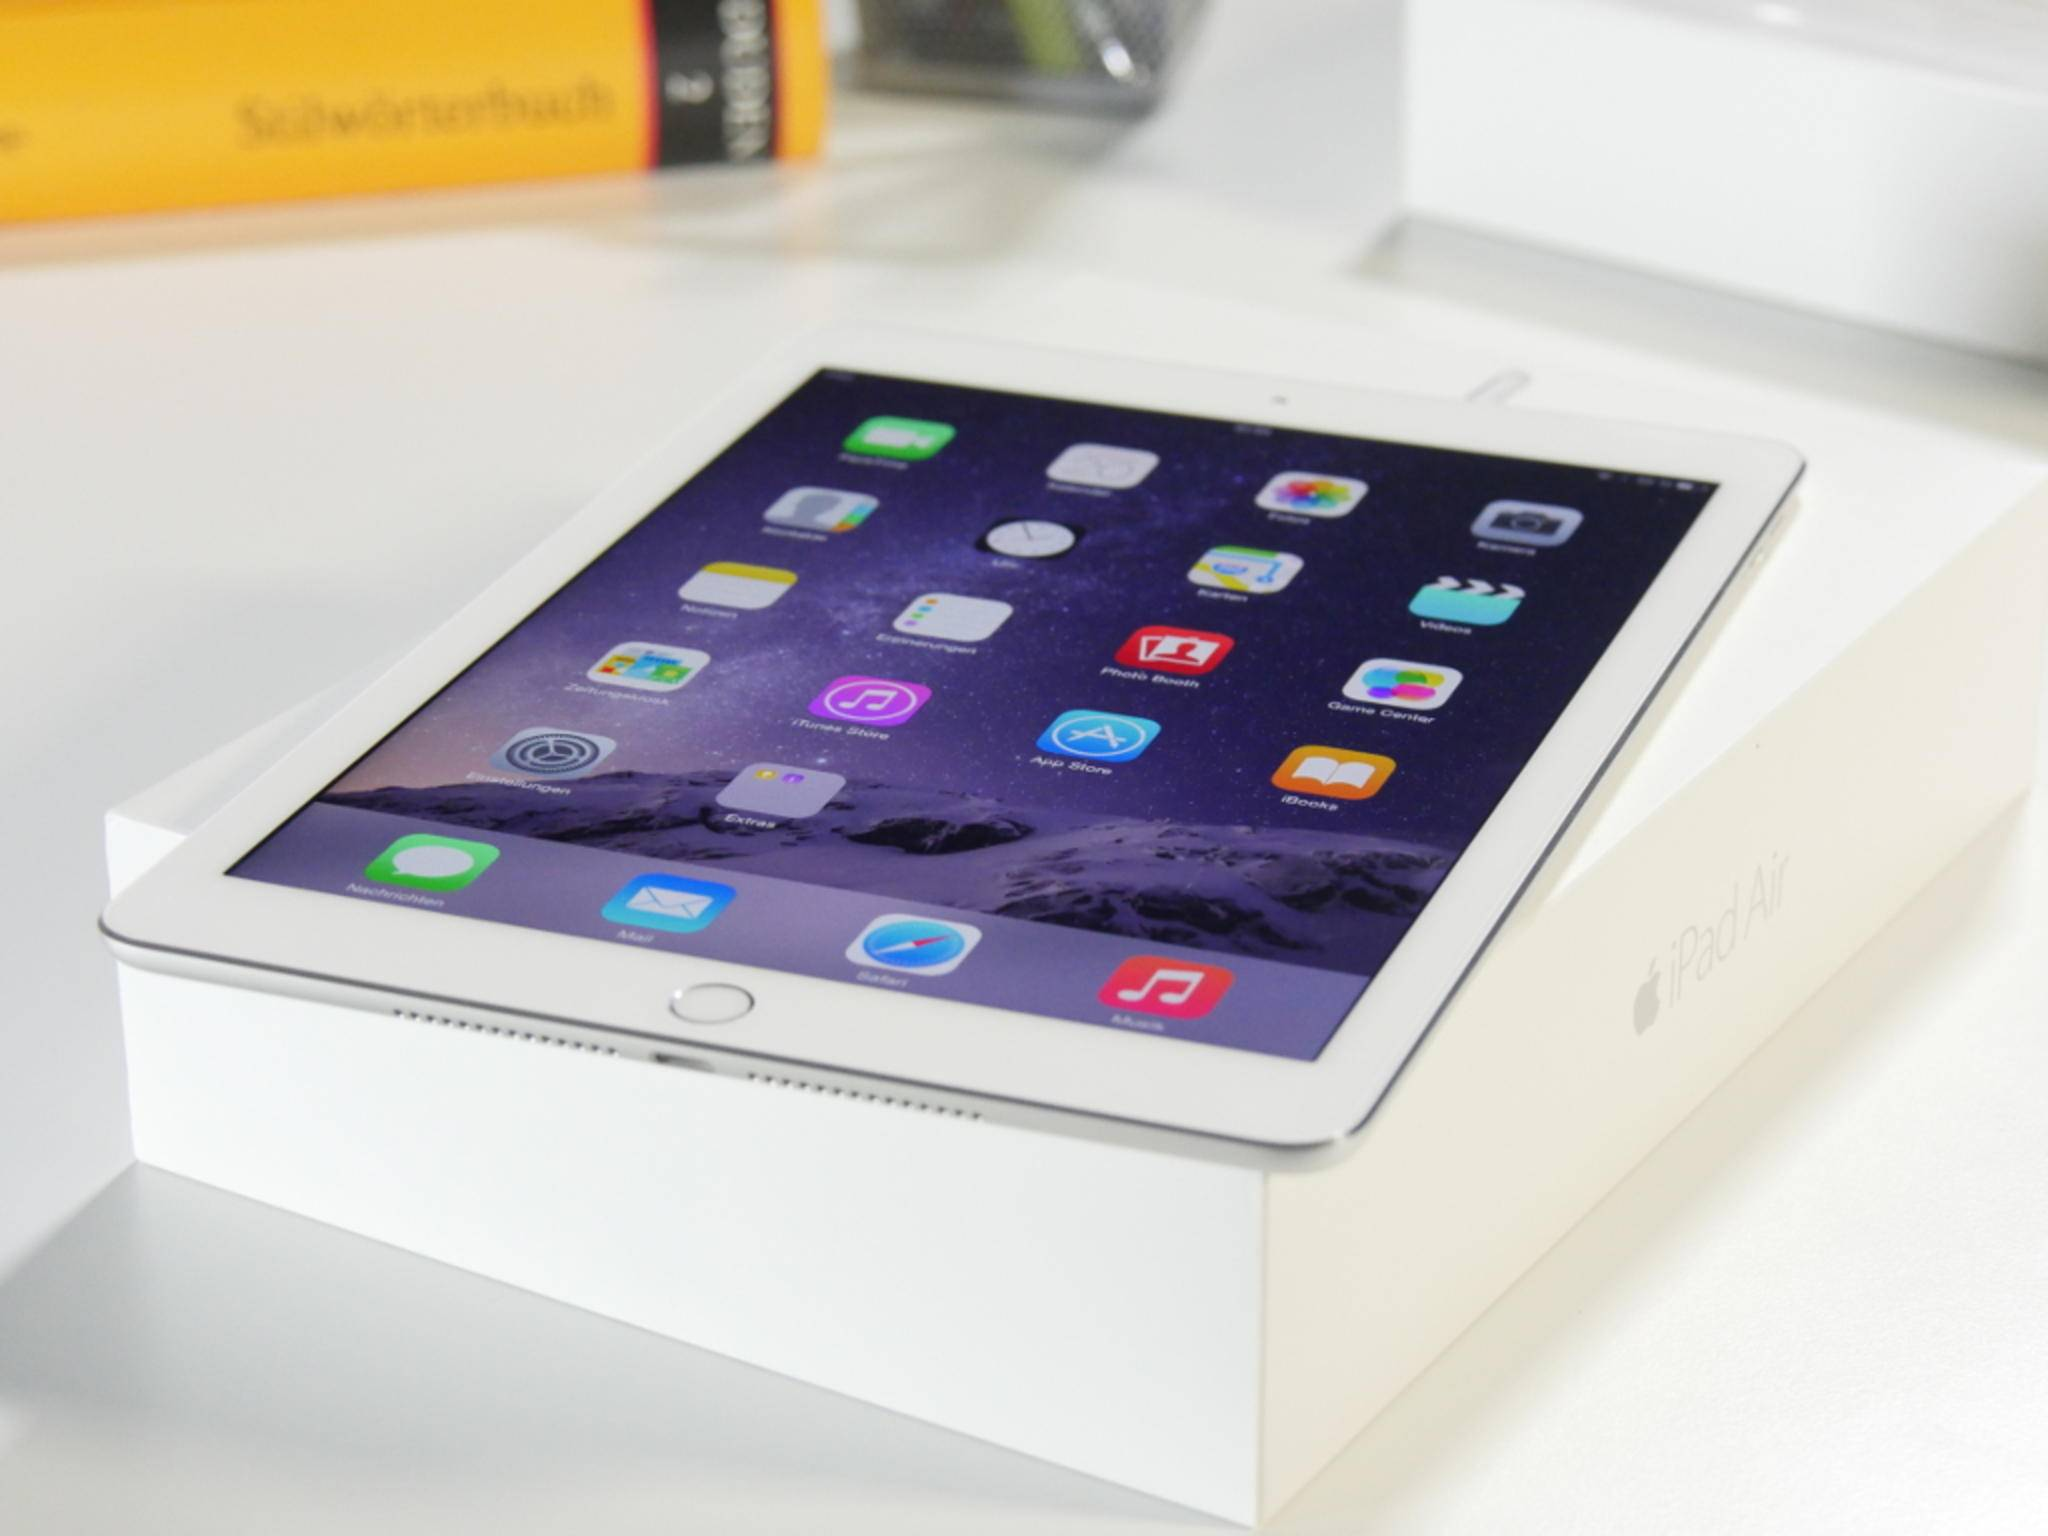 how to turn off apps on ipad air 2